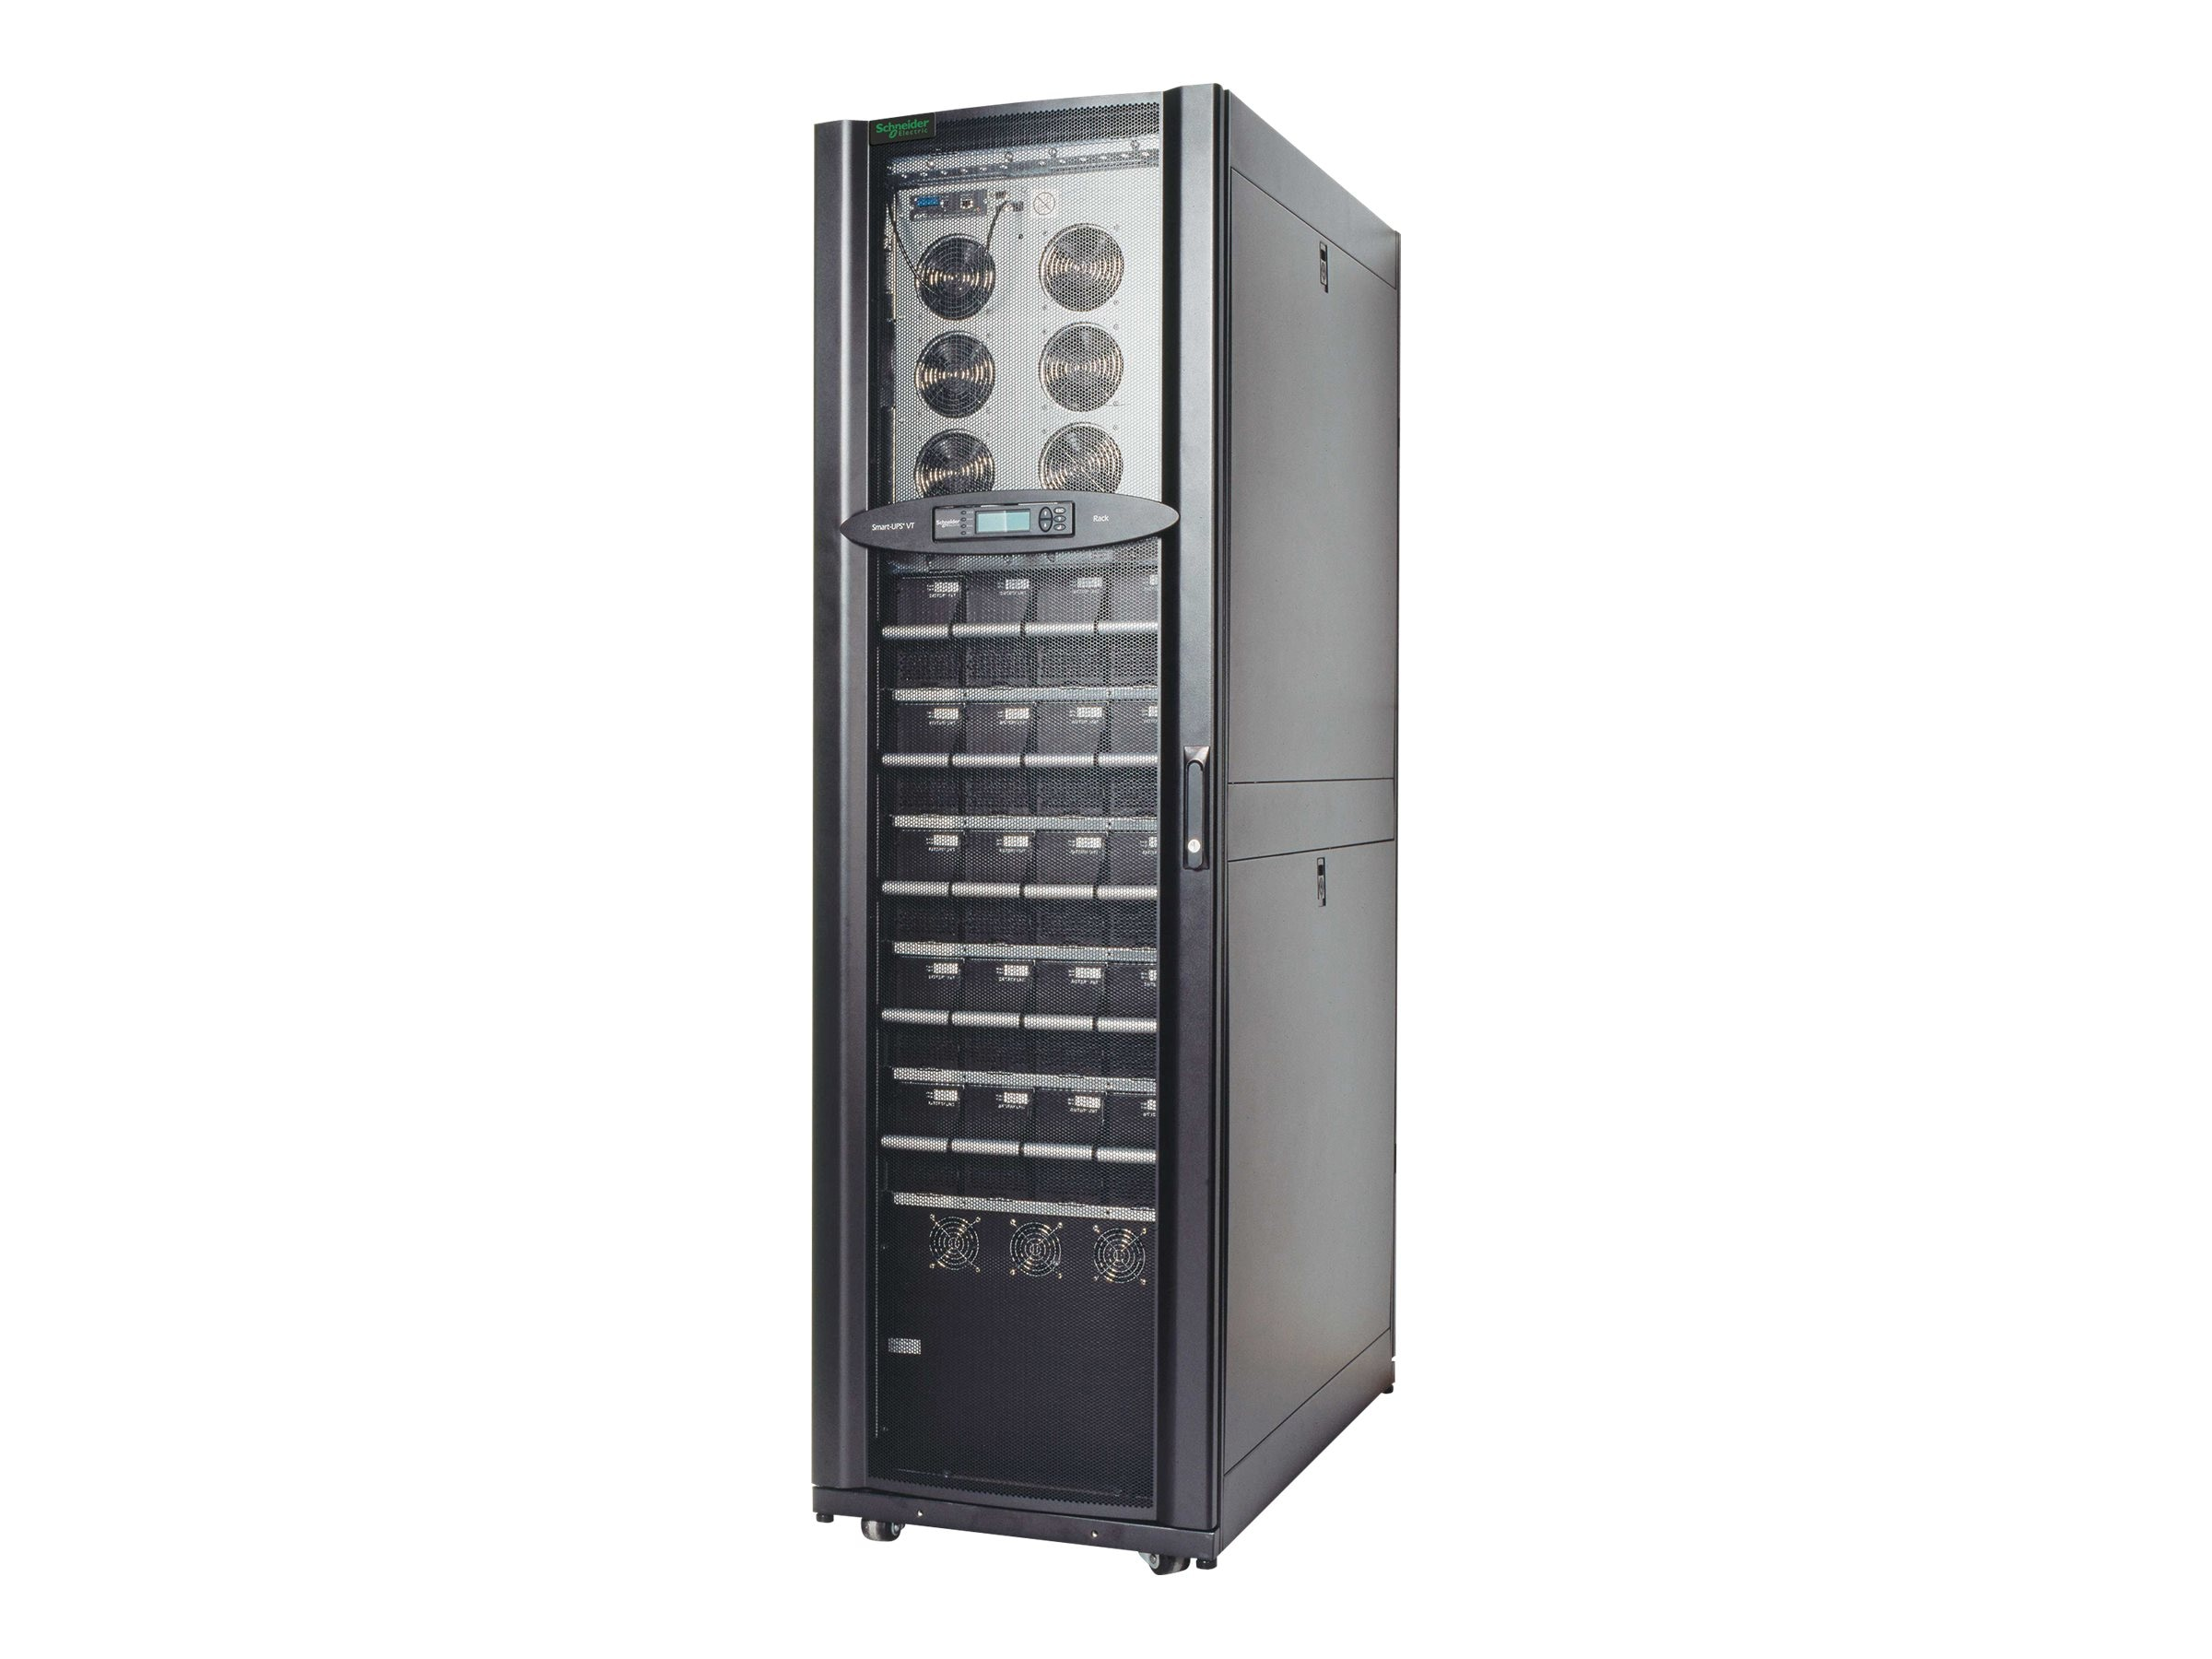 APC Smart-UPS VT 20kVA 480V In, 208V Out, Rack Mounted, (5) Battery Modules, PDU, Startup